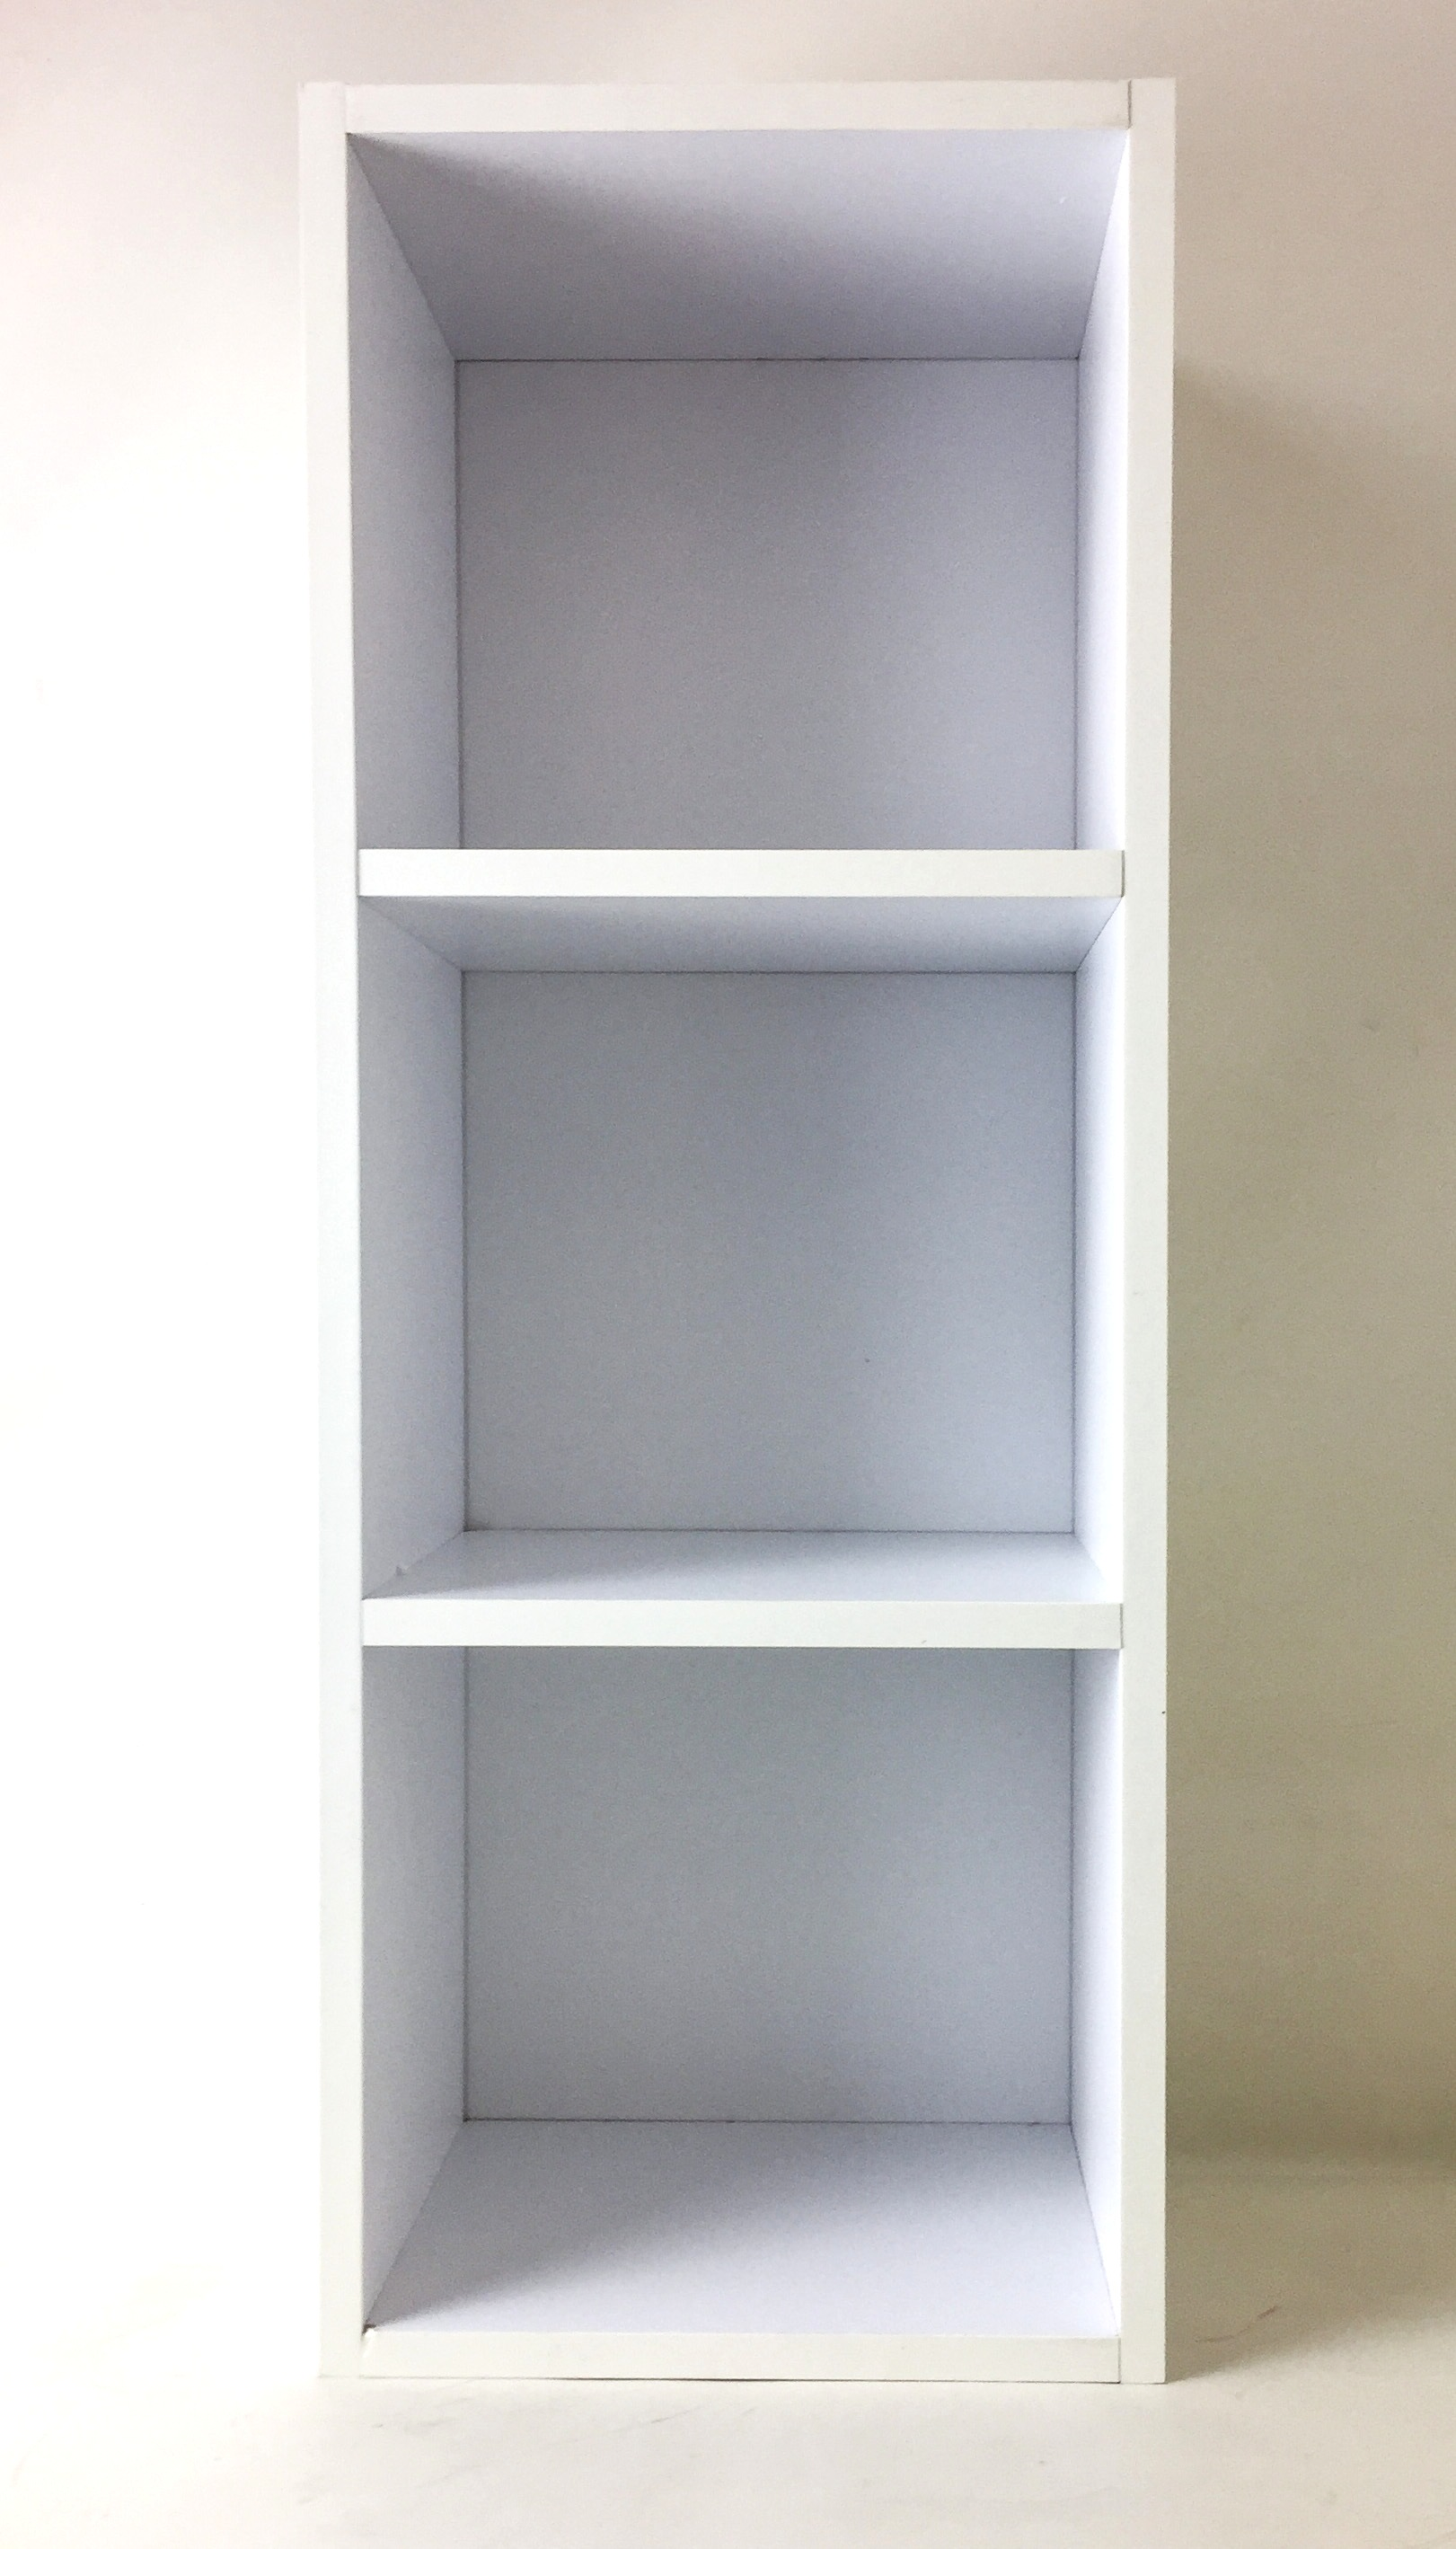 image is img loading tier itm home shelving storage bookcases colours many office bookcase wooden unit display